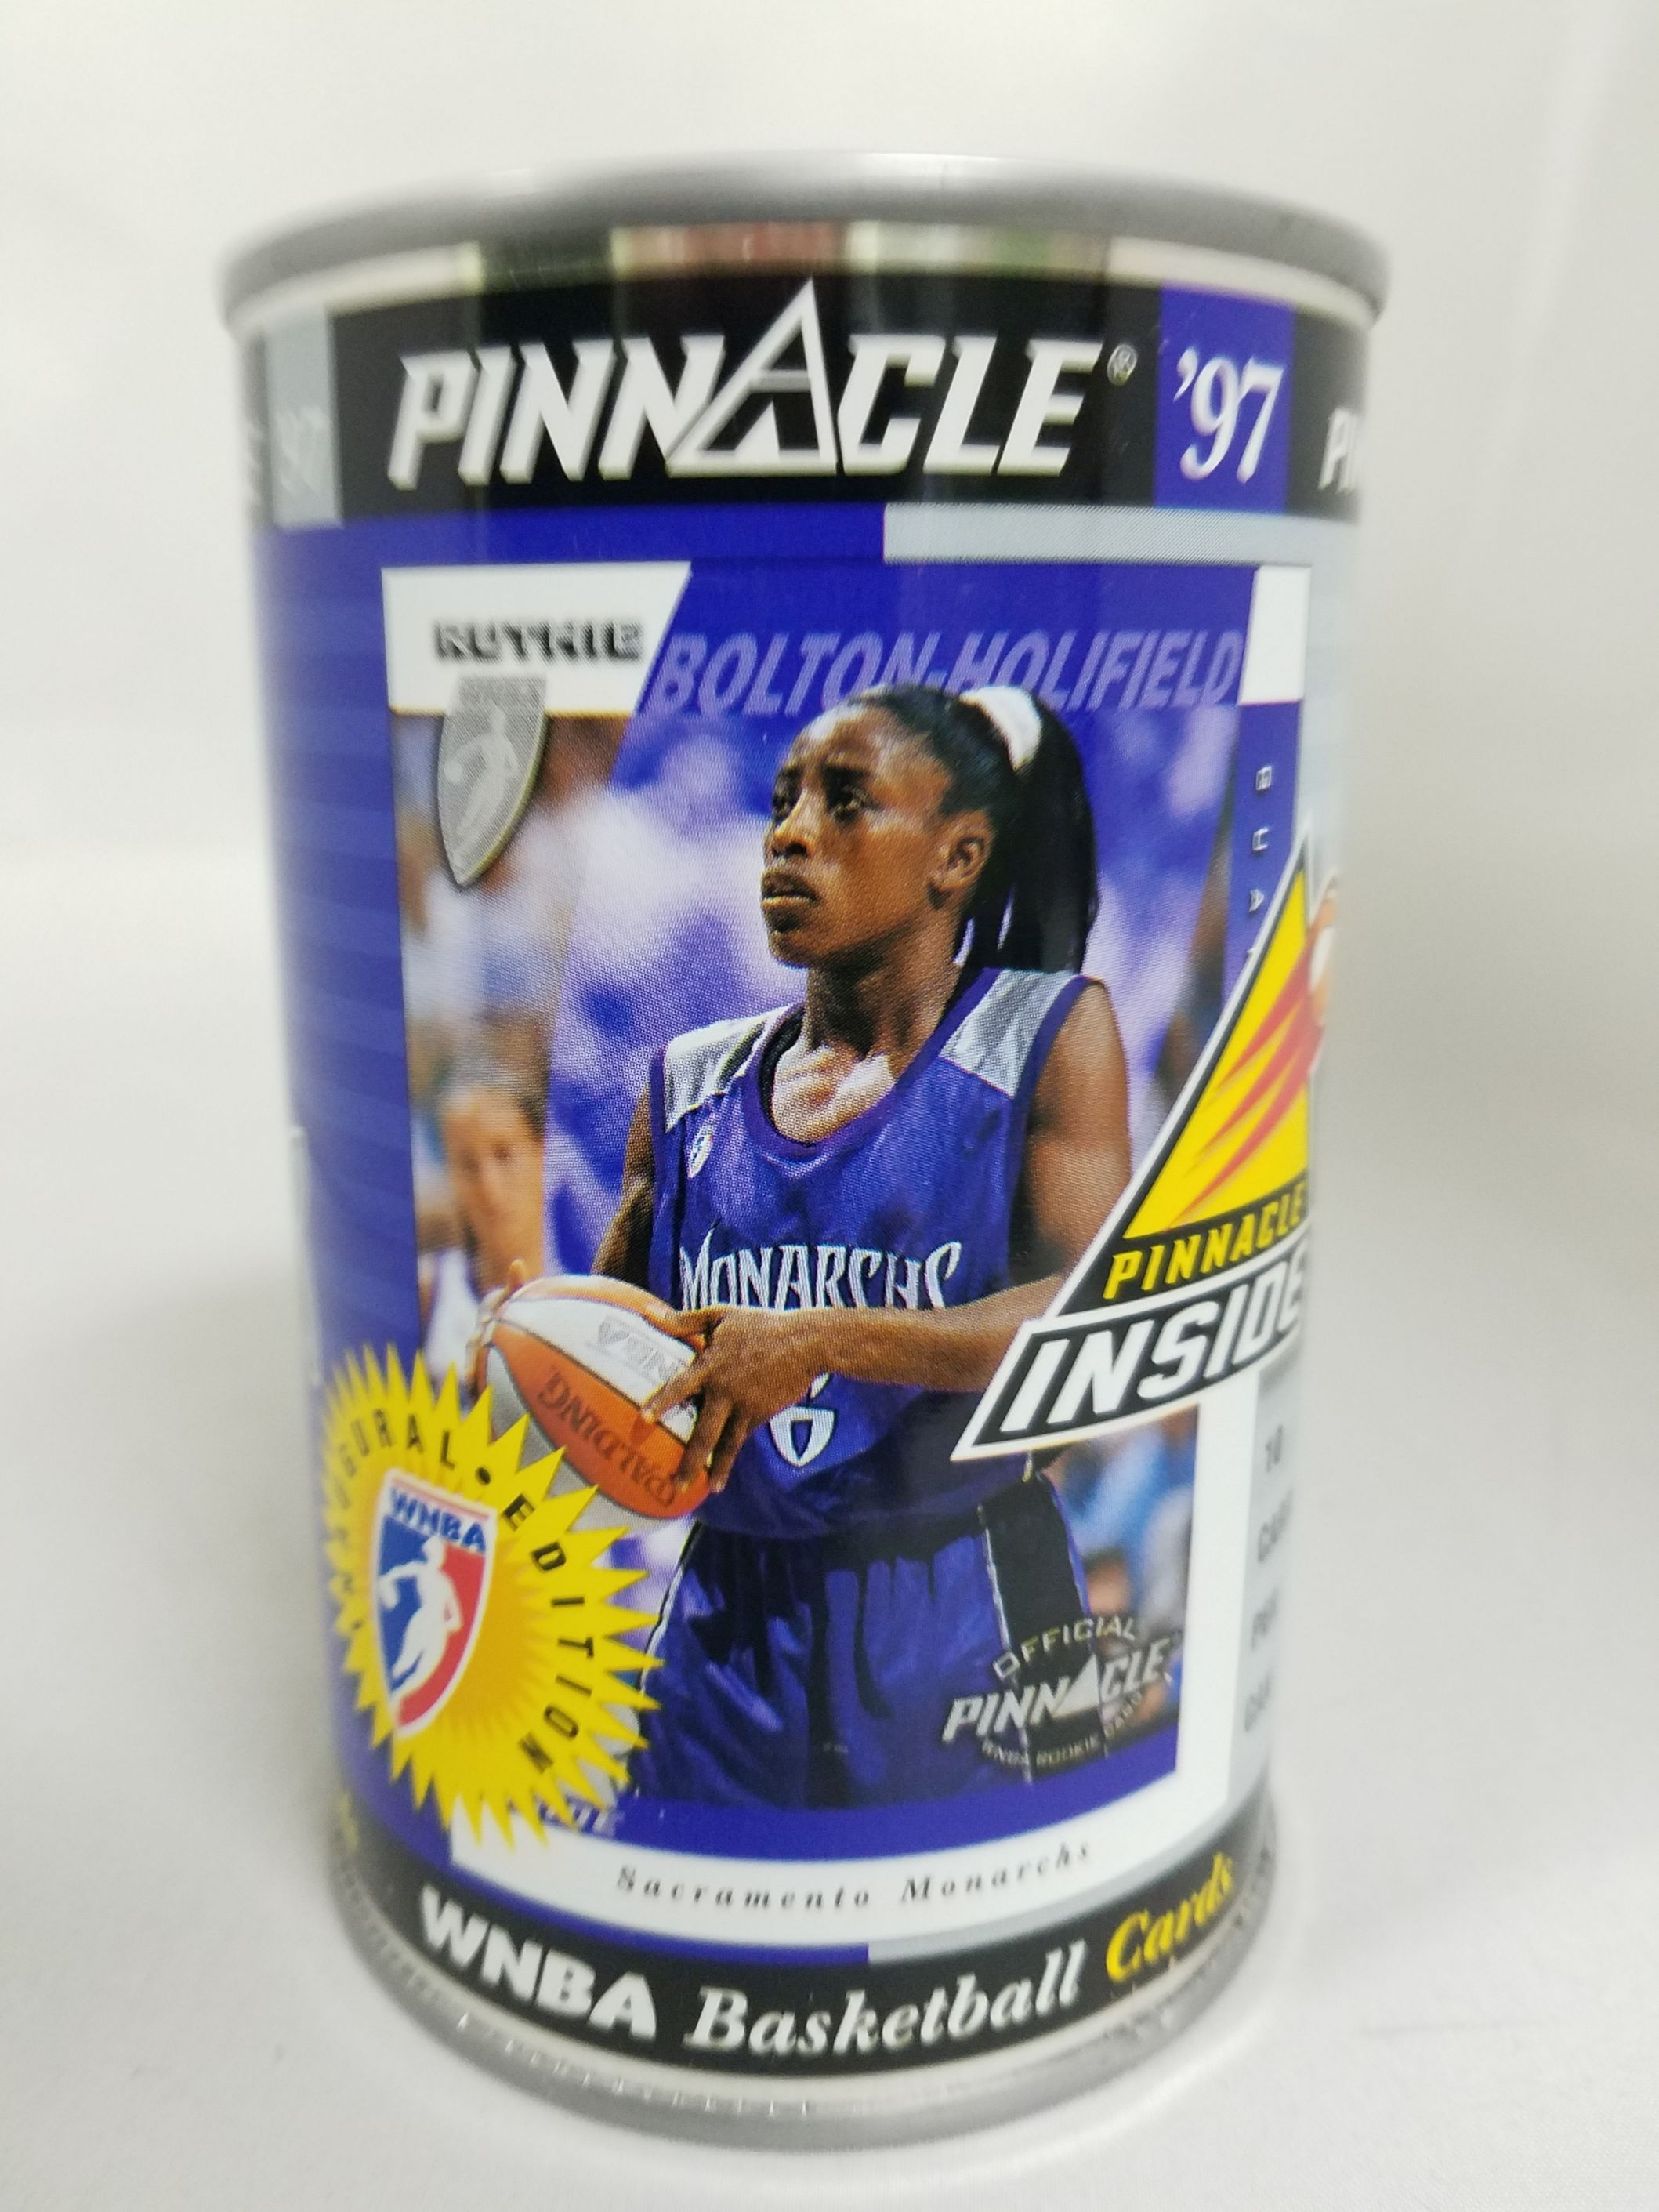 1997 Pinnacle Inside WNBA Cans #14 Ruthie Bolton-Holifield